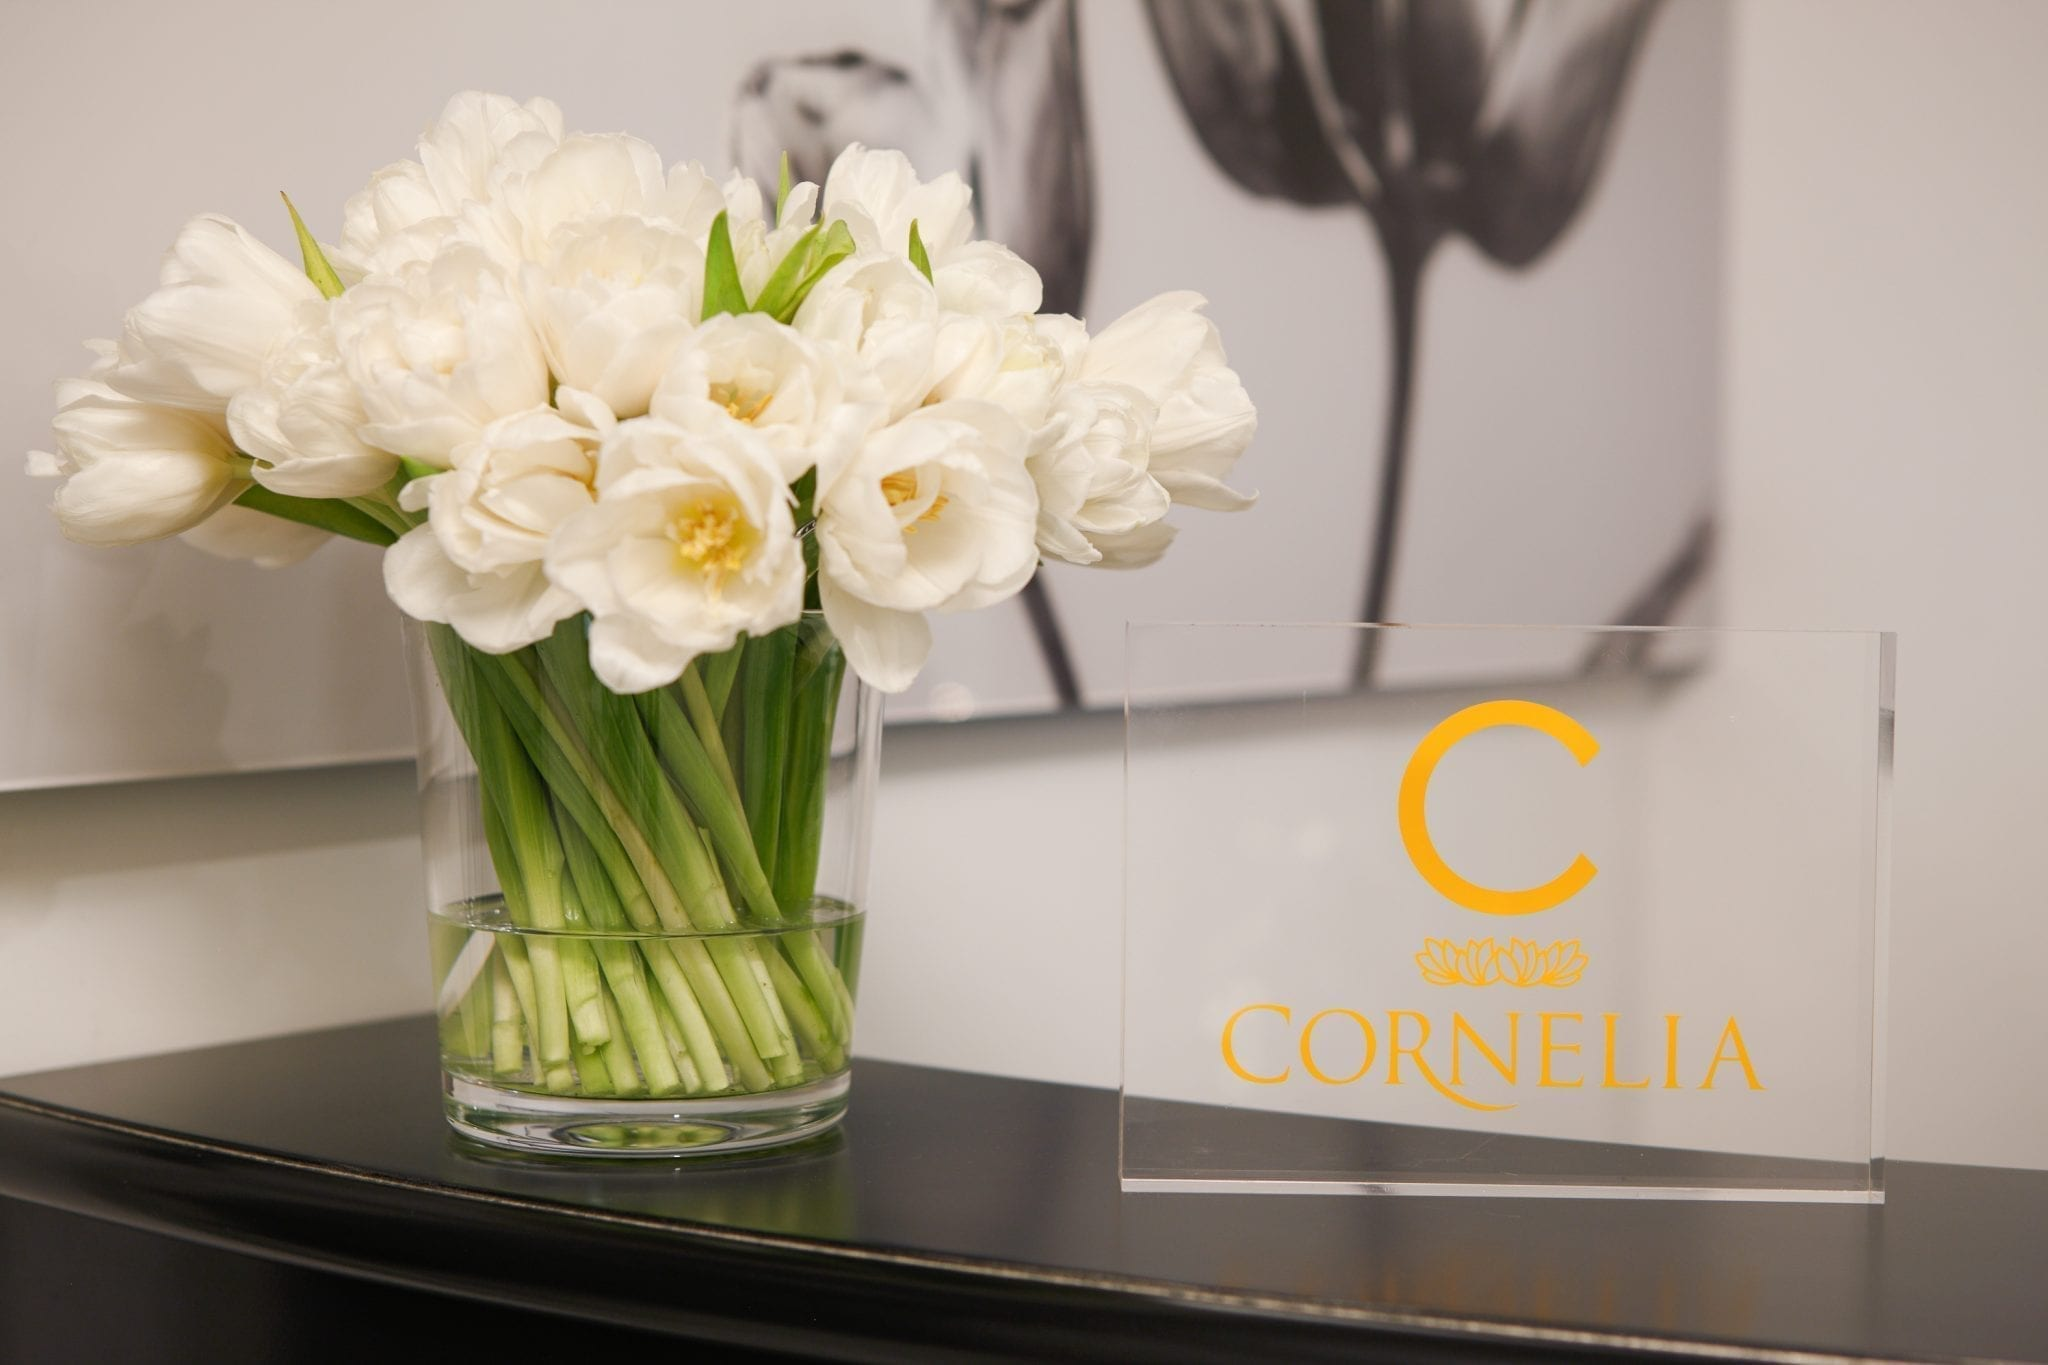 Close-up of the front reception desk of the Cornelia Spa. Next to the clear logo placard is a clear glass holding white roses.